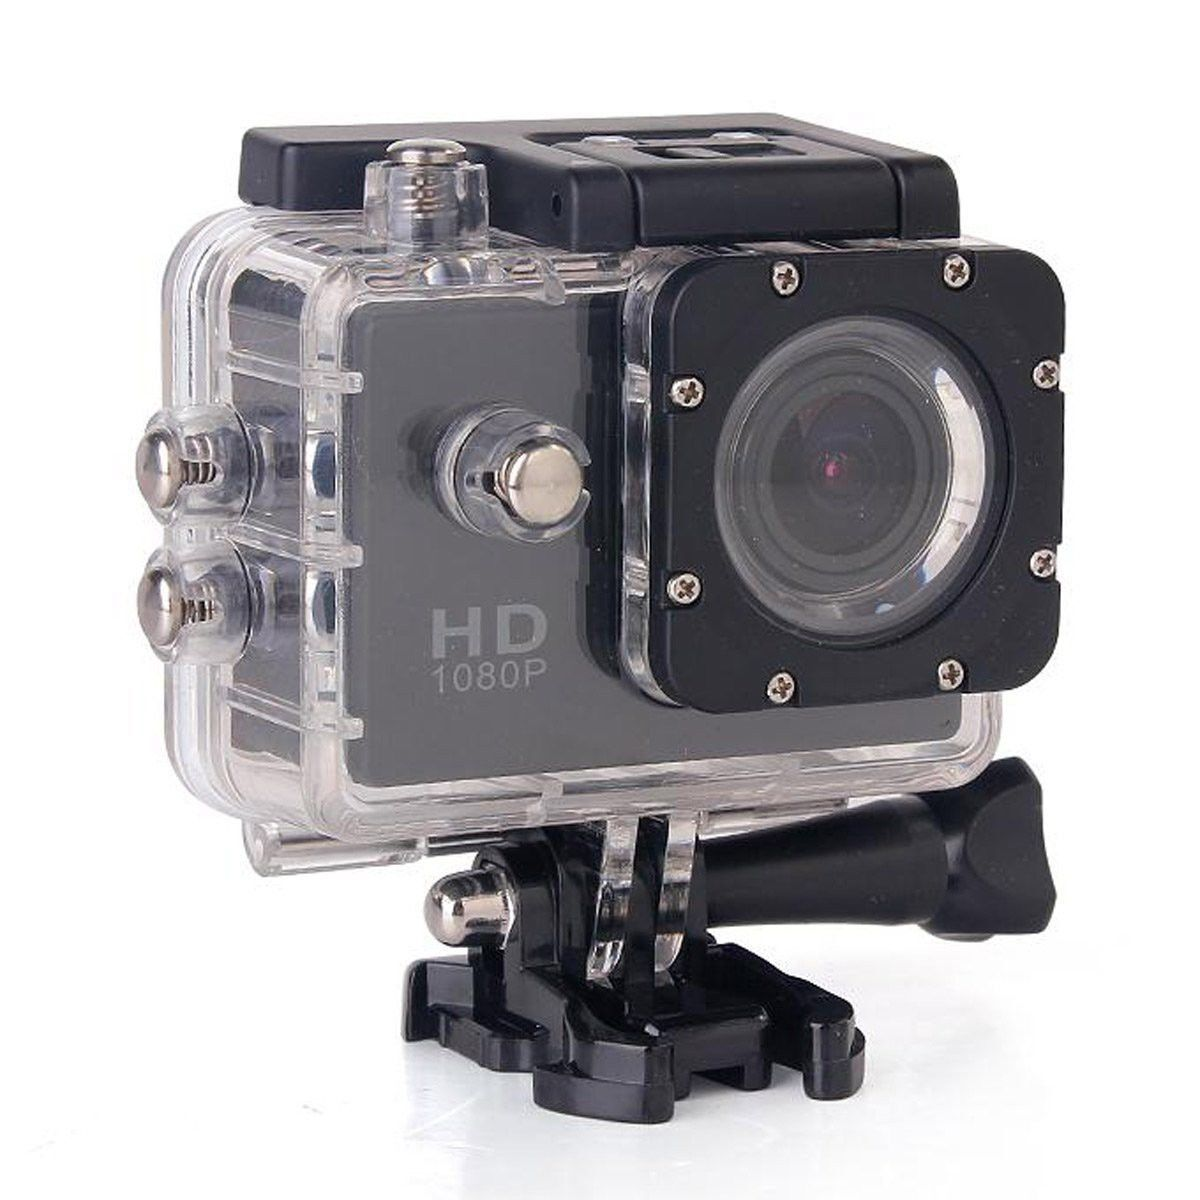 original sjcam sj4000 hd 1080p cam sports action waterproof camera 2x batteries ebay. Black Bedroom Furniture Sets. Home Design Ideas